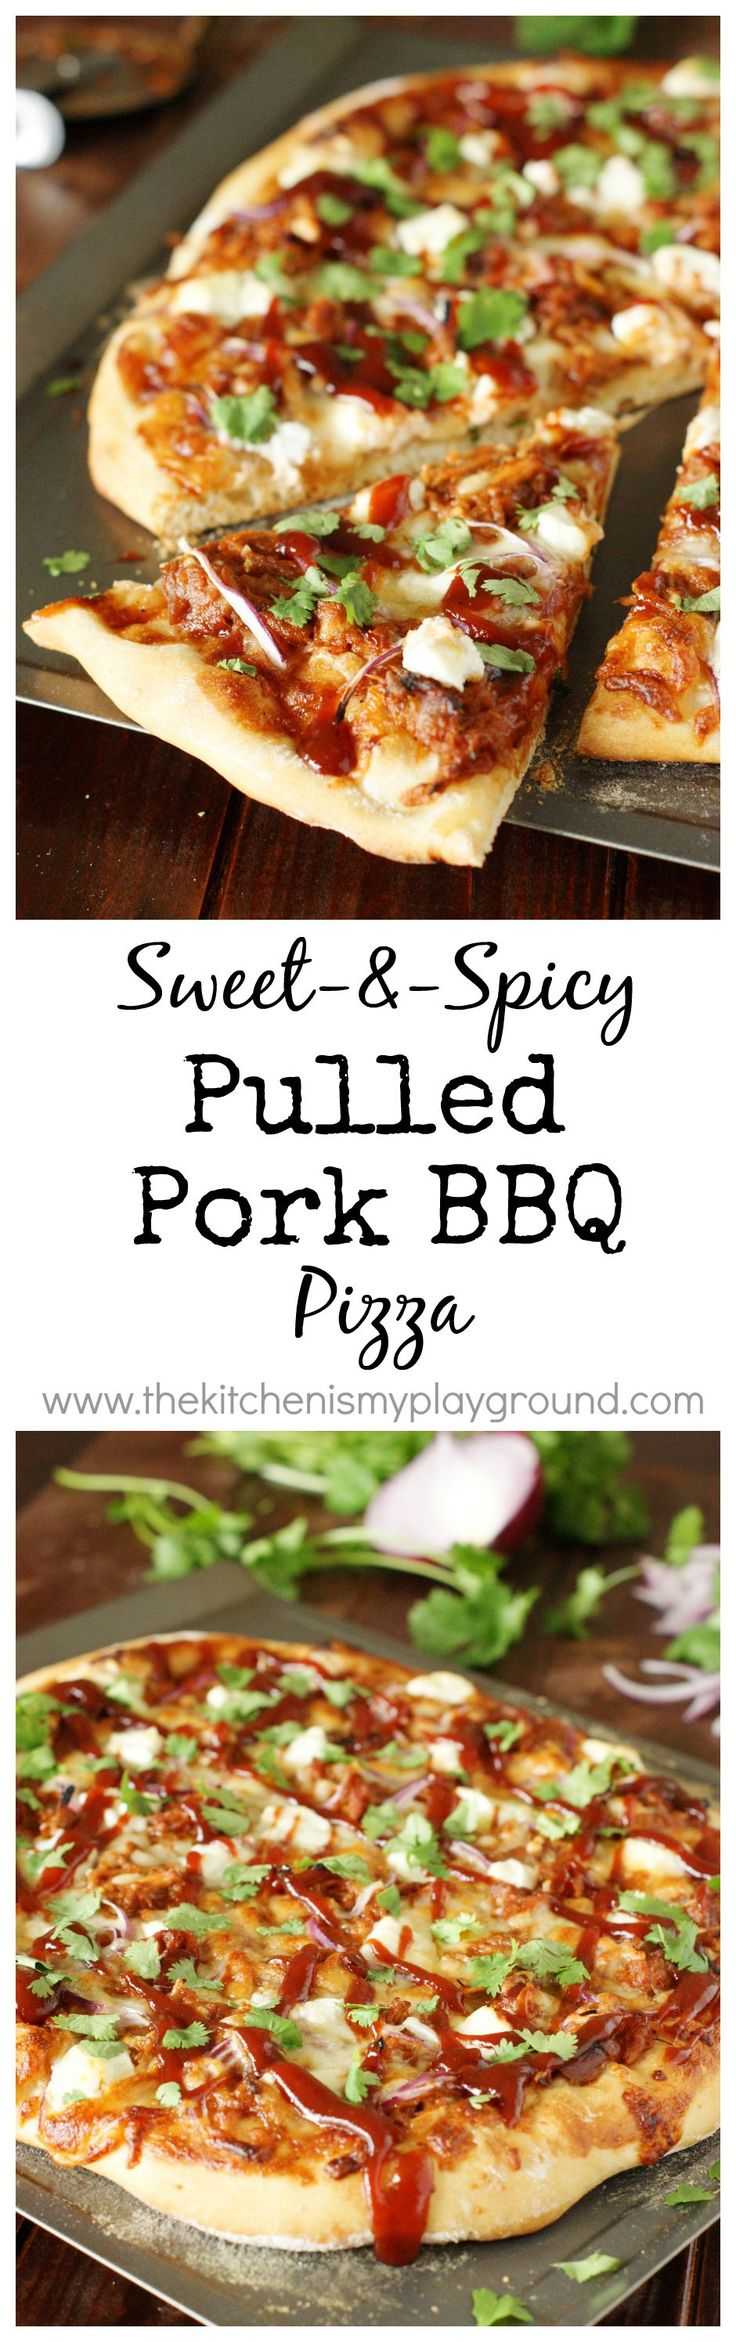 Sweet-&-Spicy Pulled Pork BBQ Pizza ~ out-of-this-world good!  ad #pulledpork #pizza #homemadepizza www.thekitchenismyplayground.com